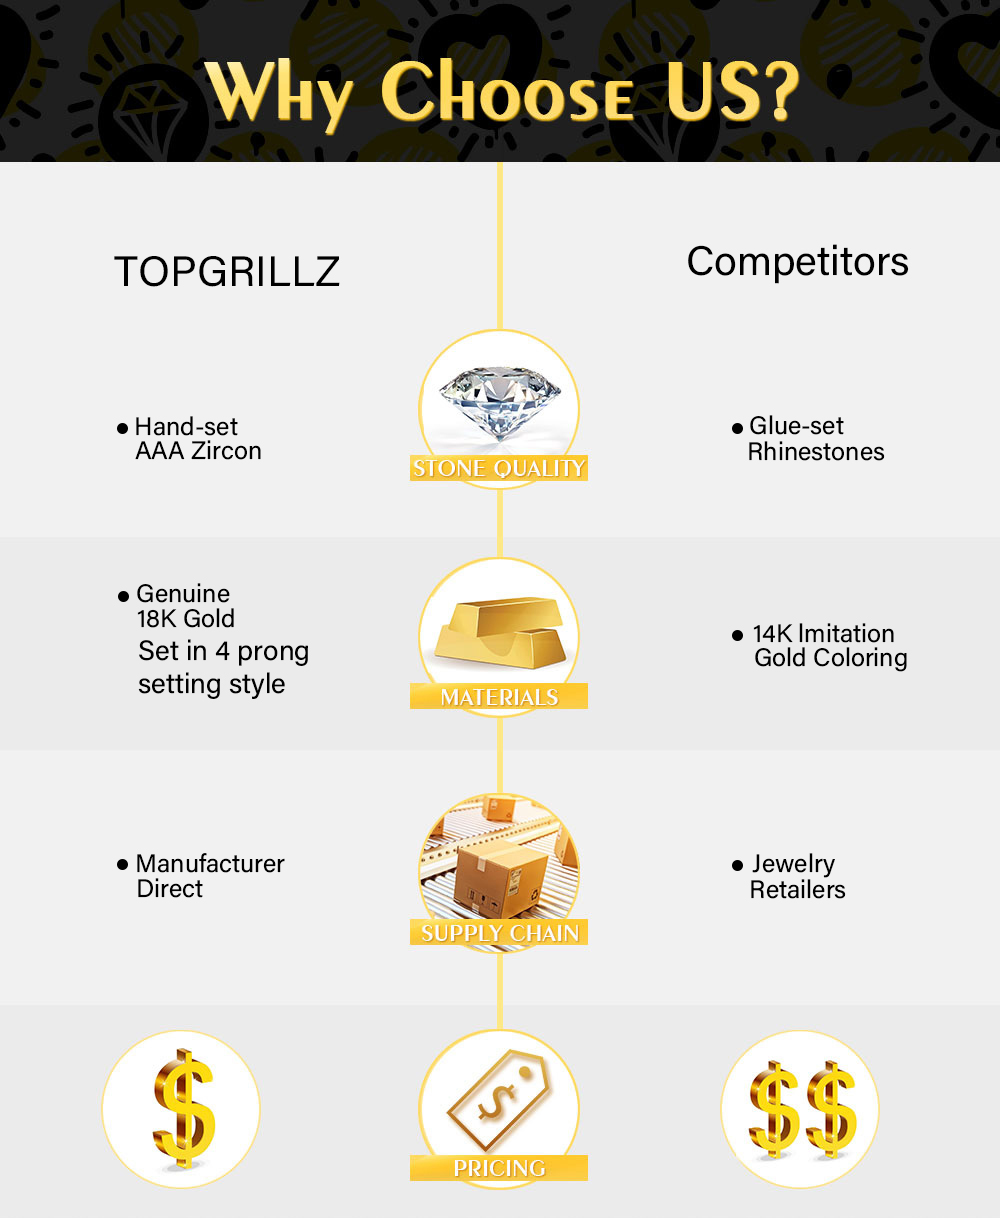 why choose us-topgrillz